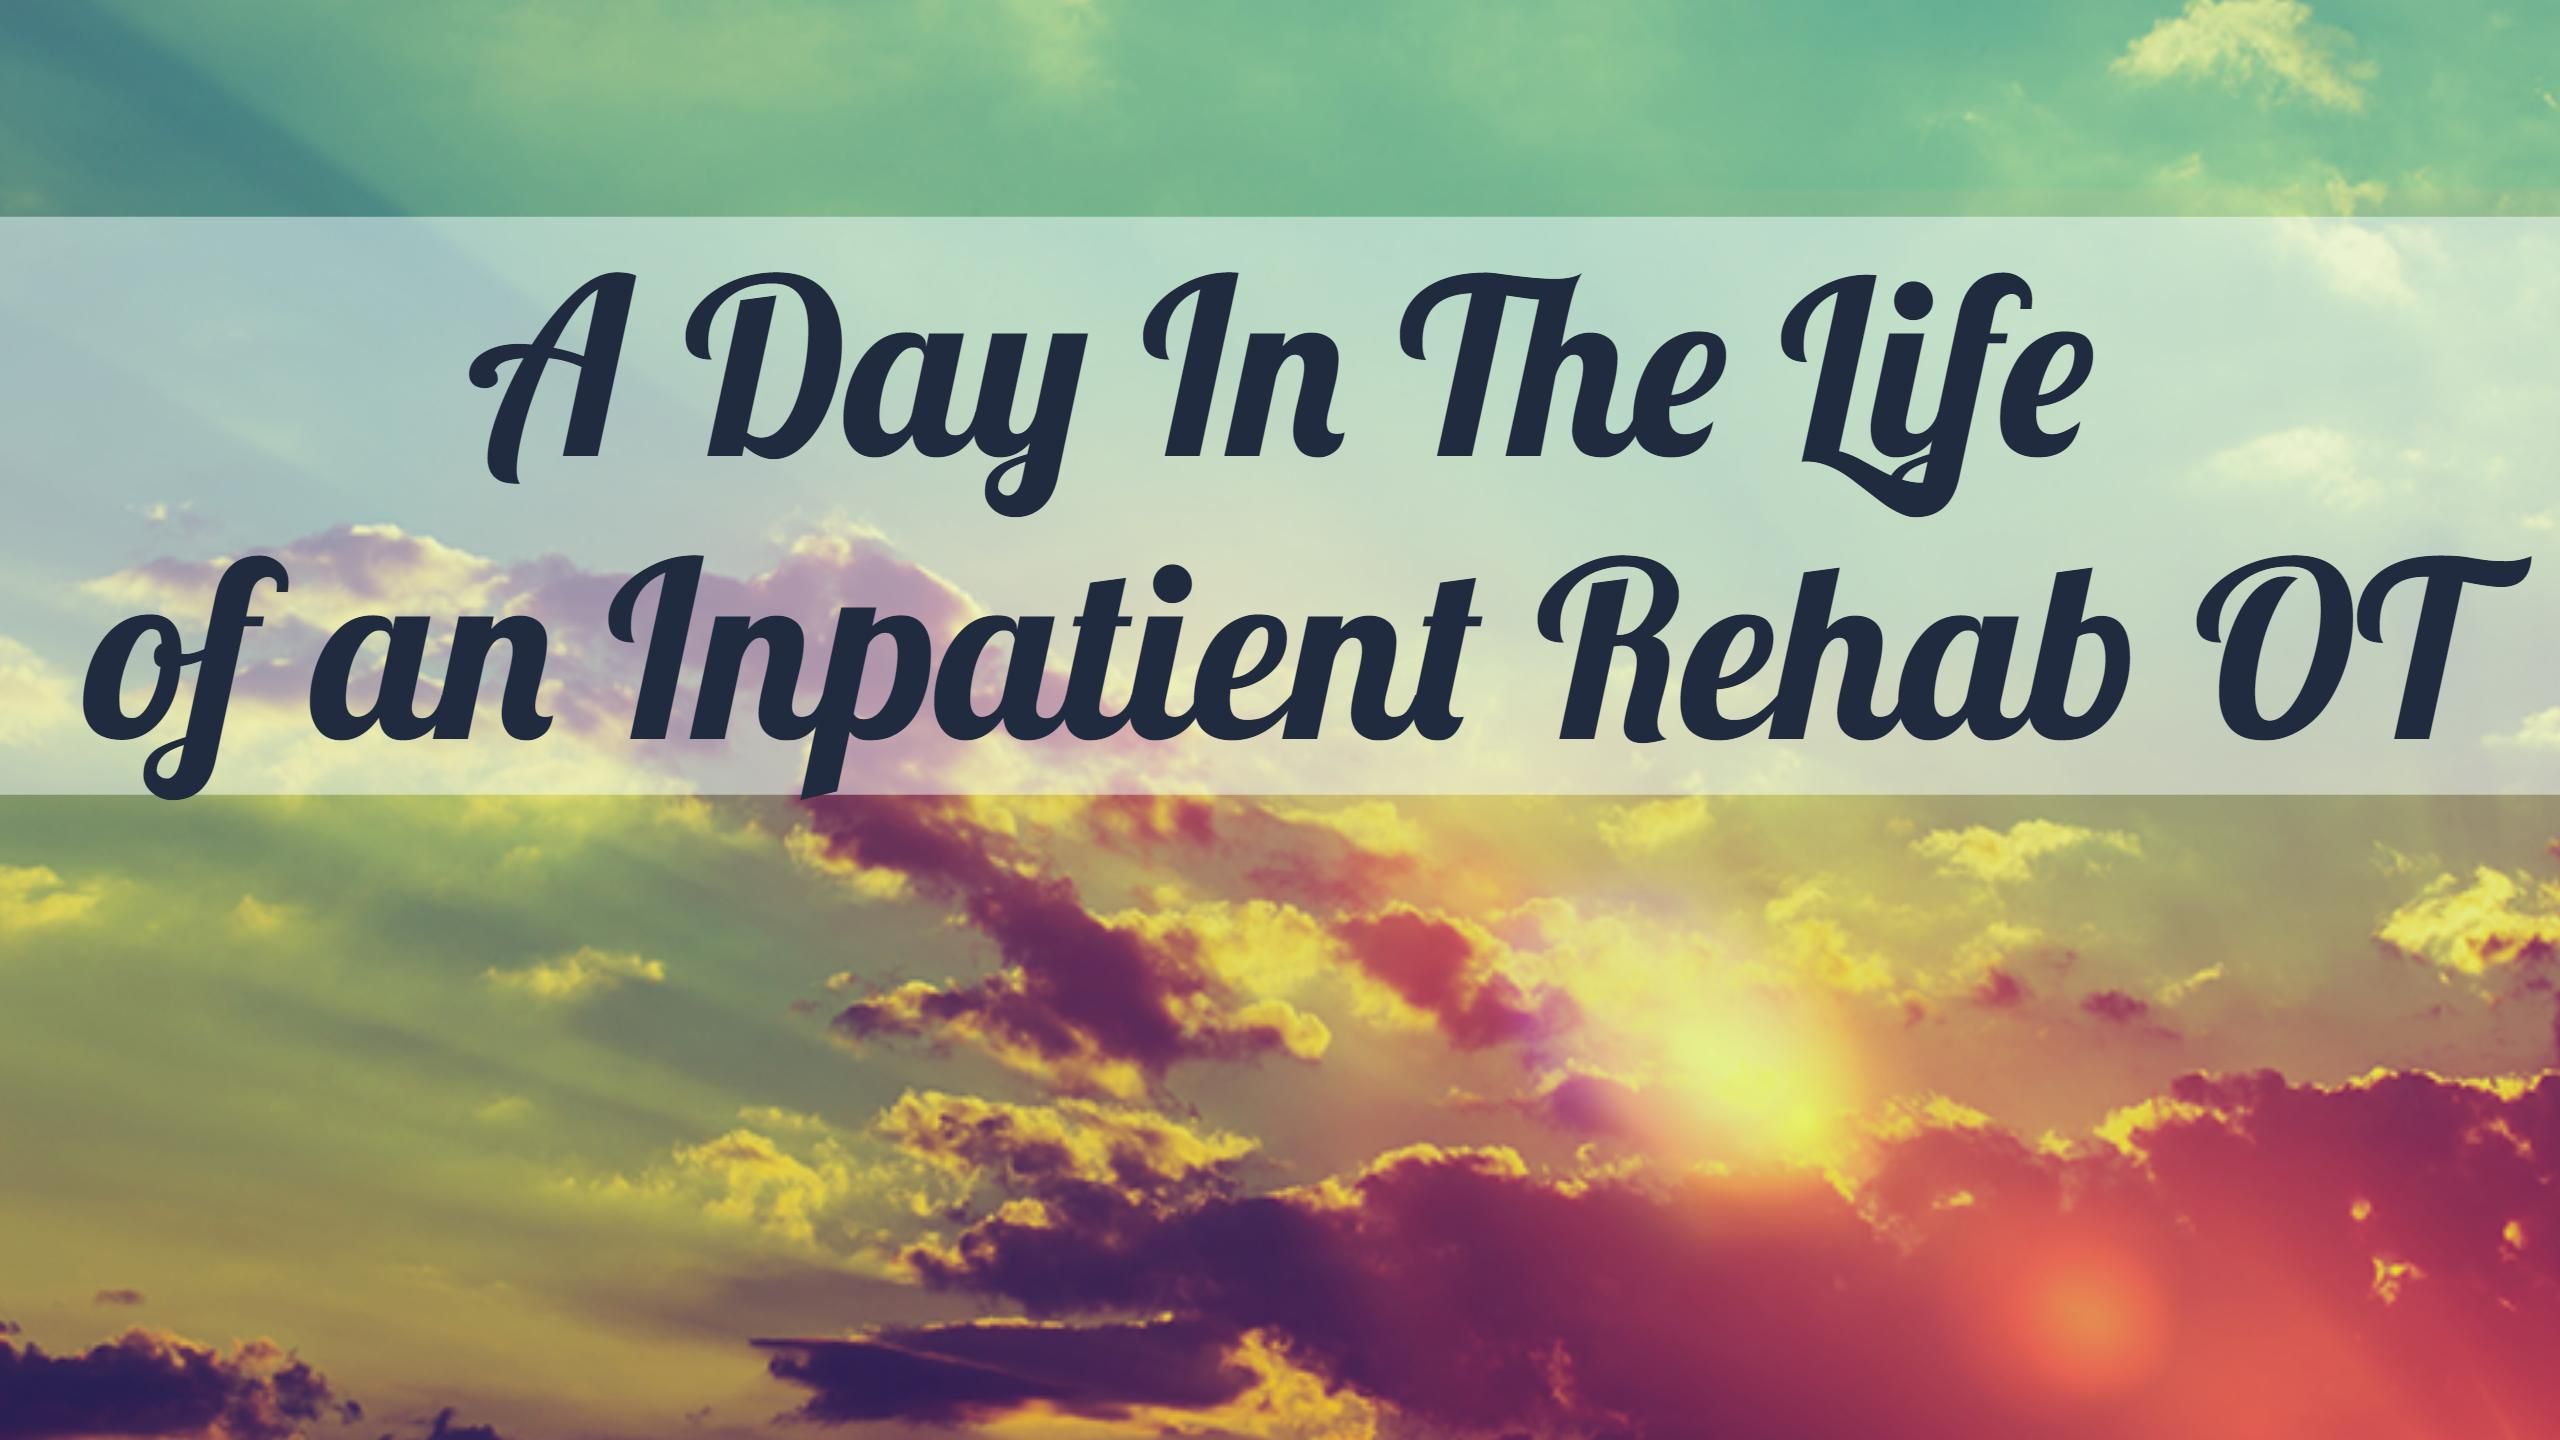 A Day In The Life Of An Inpatient Rehab Occupational Therapist Myotspot Com Occupational Therapist Rehab Occupational